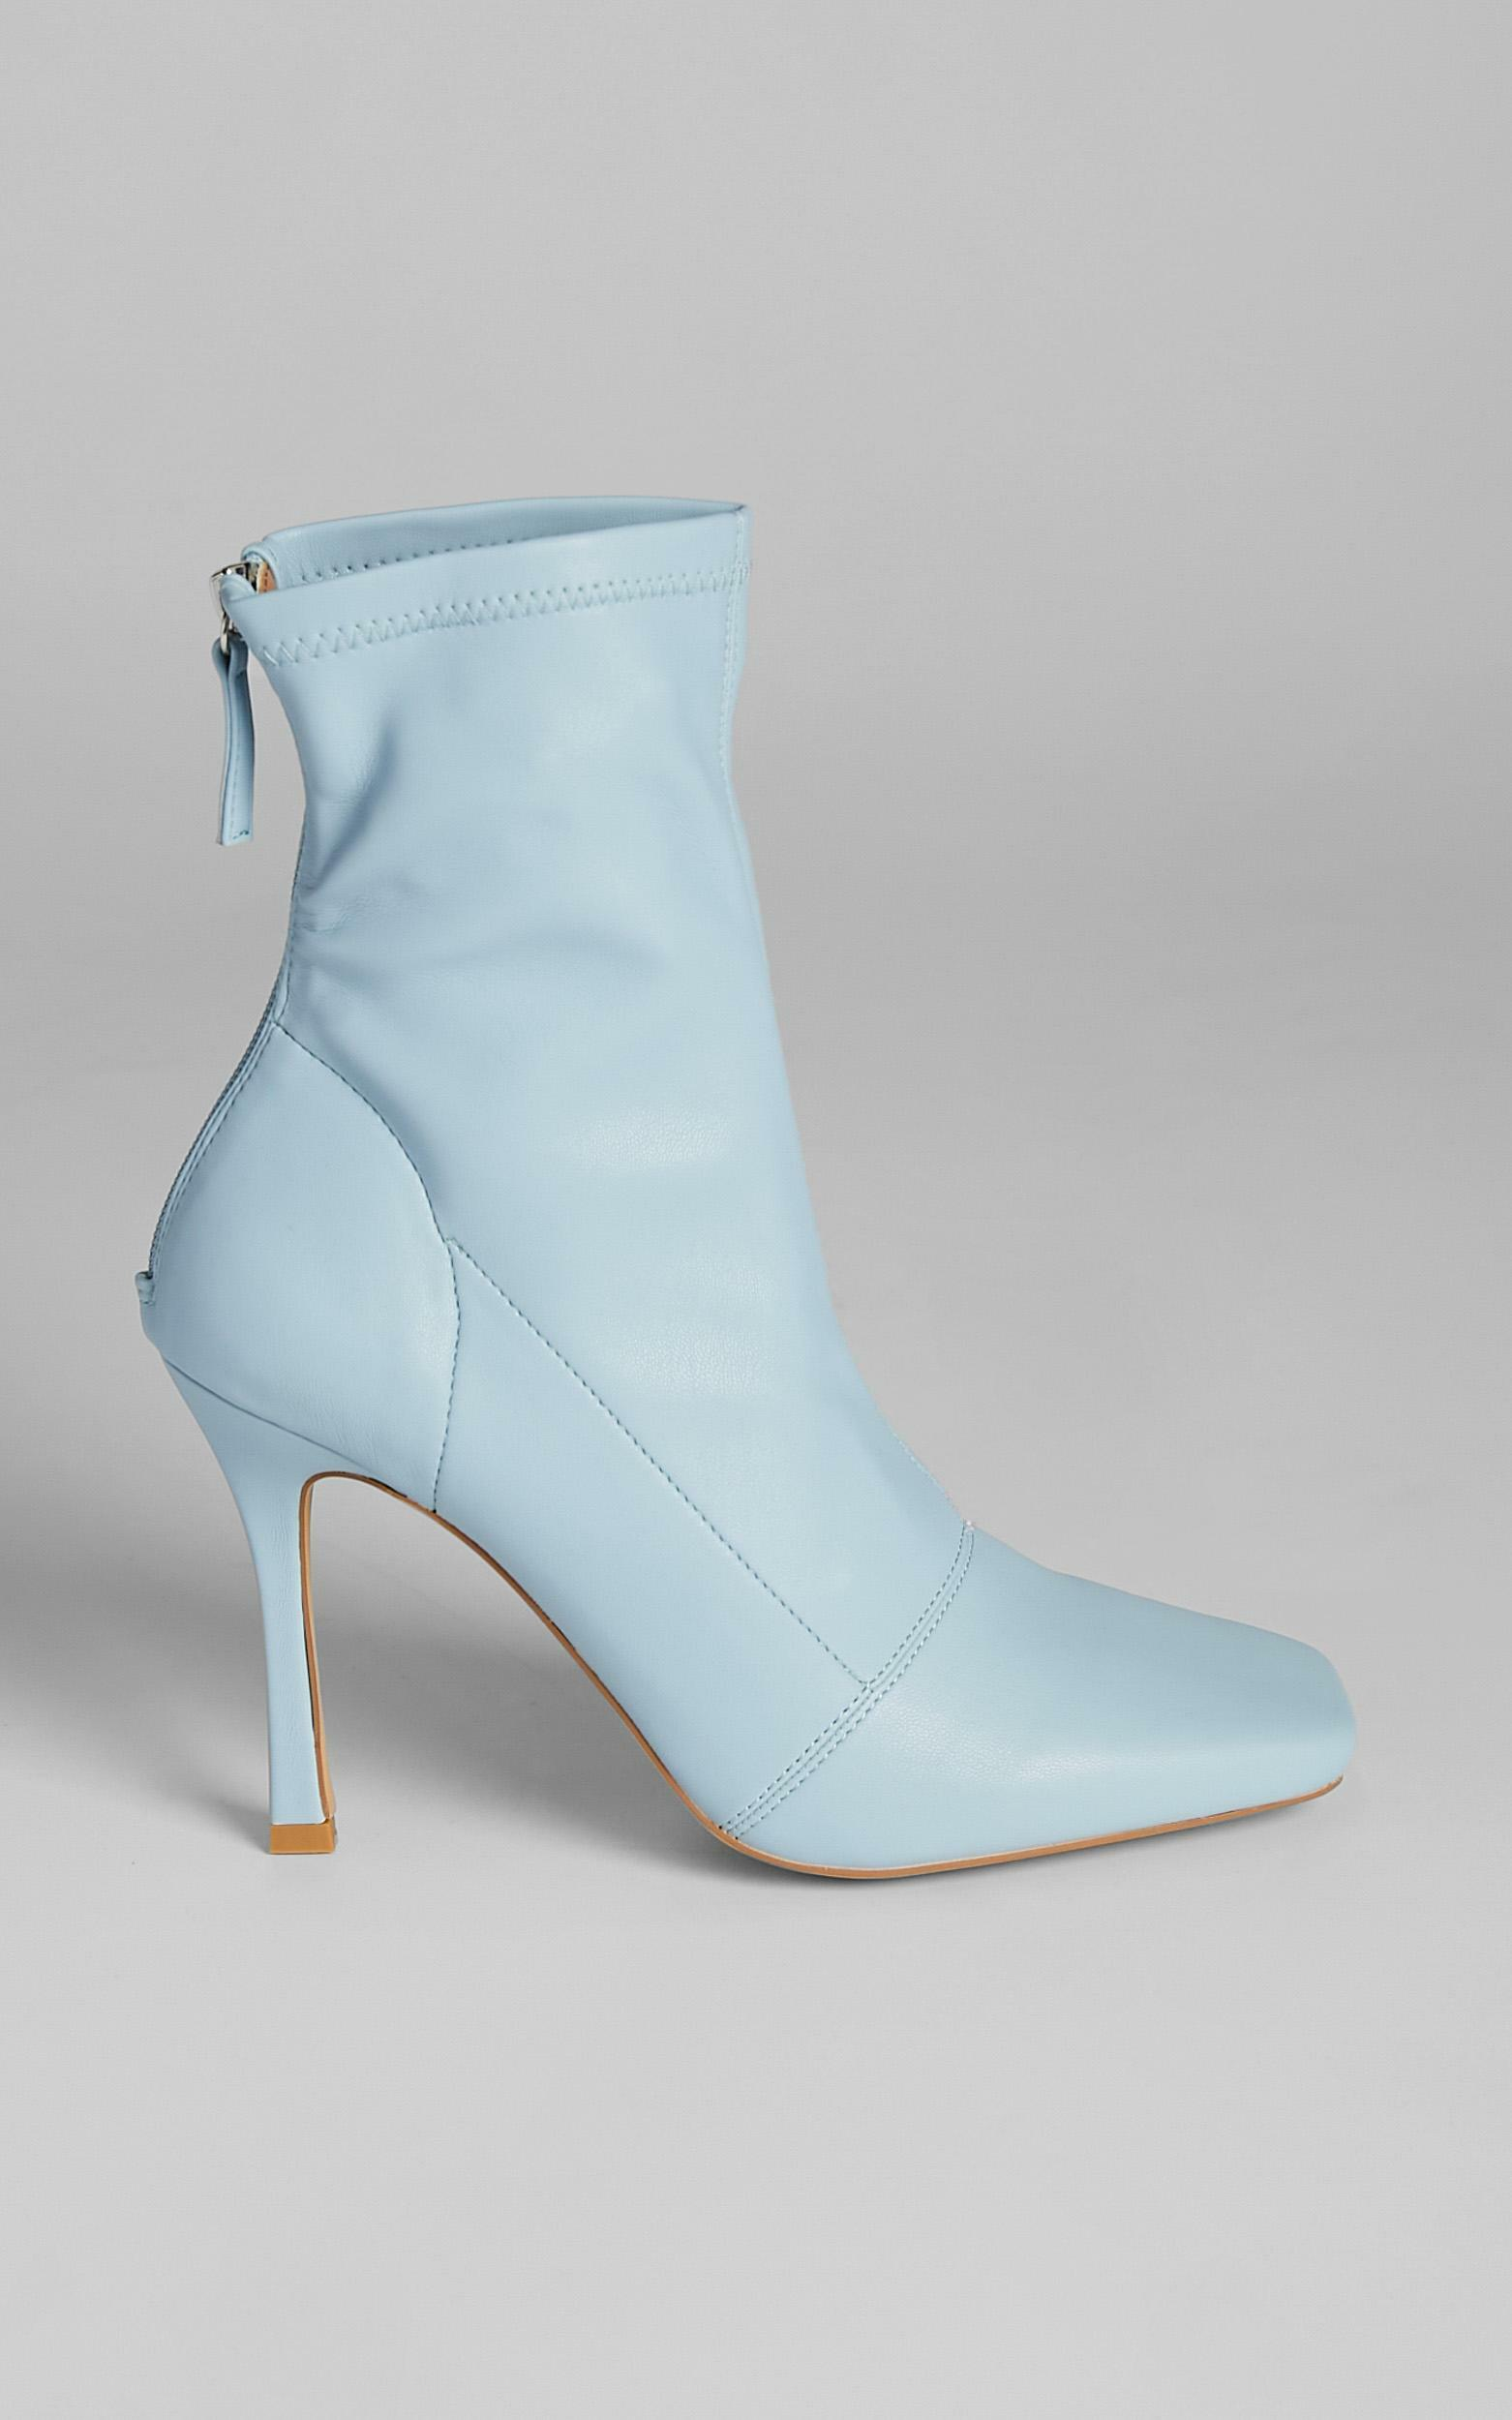 Therapy - Yasmeen Boots in Powder Blue - 05, BLU2, hi-res image number null